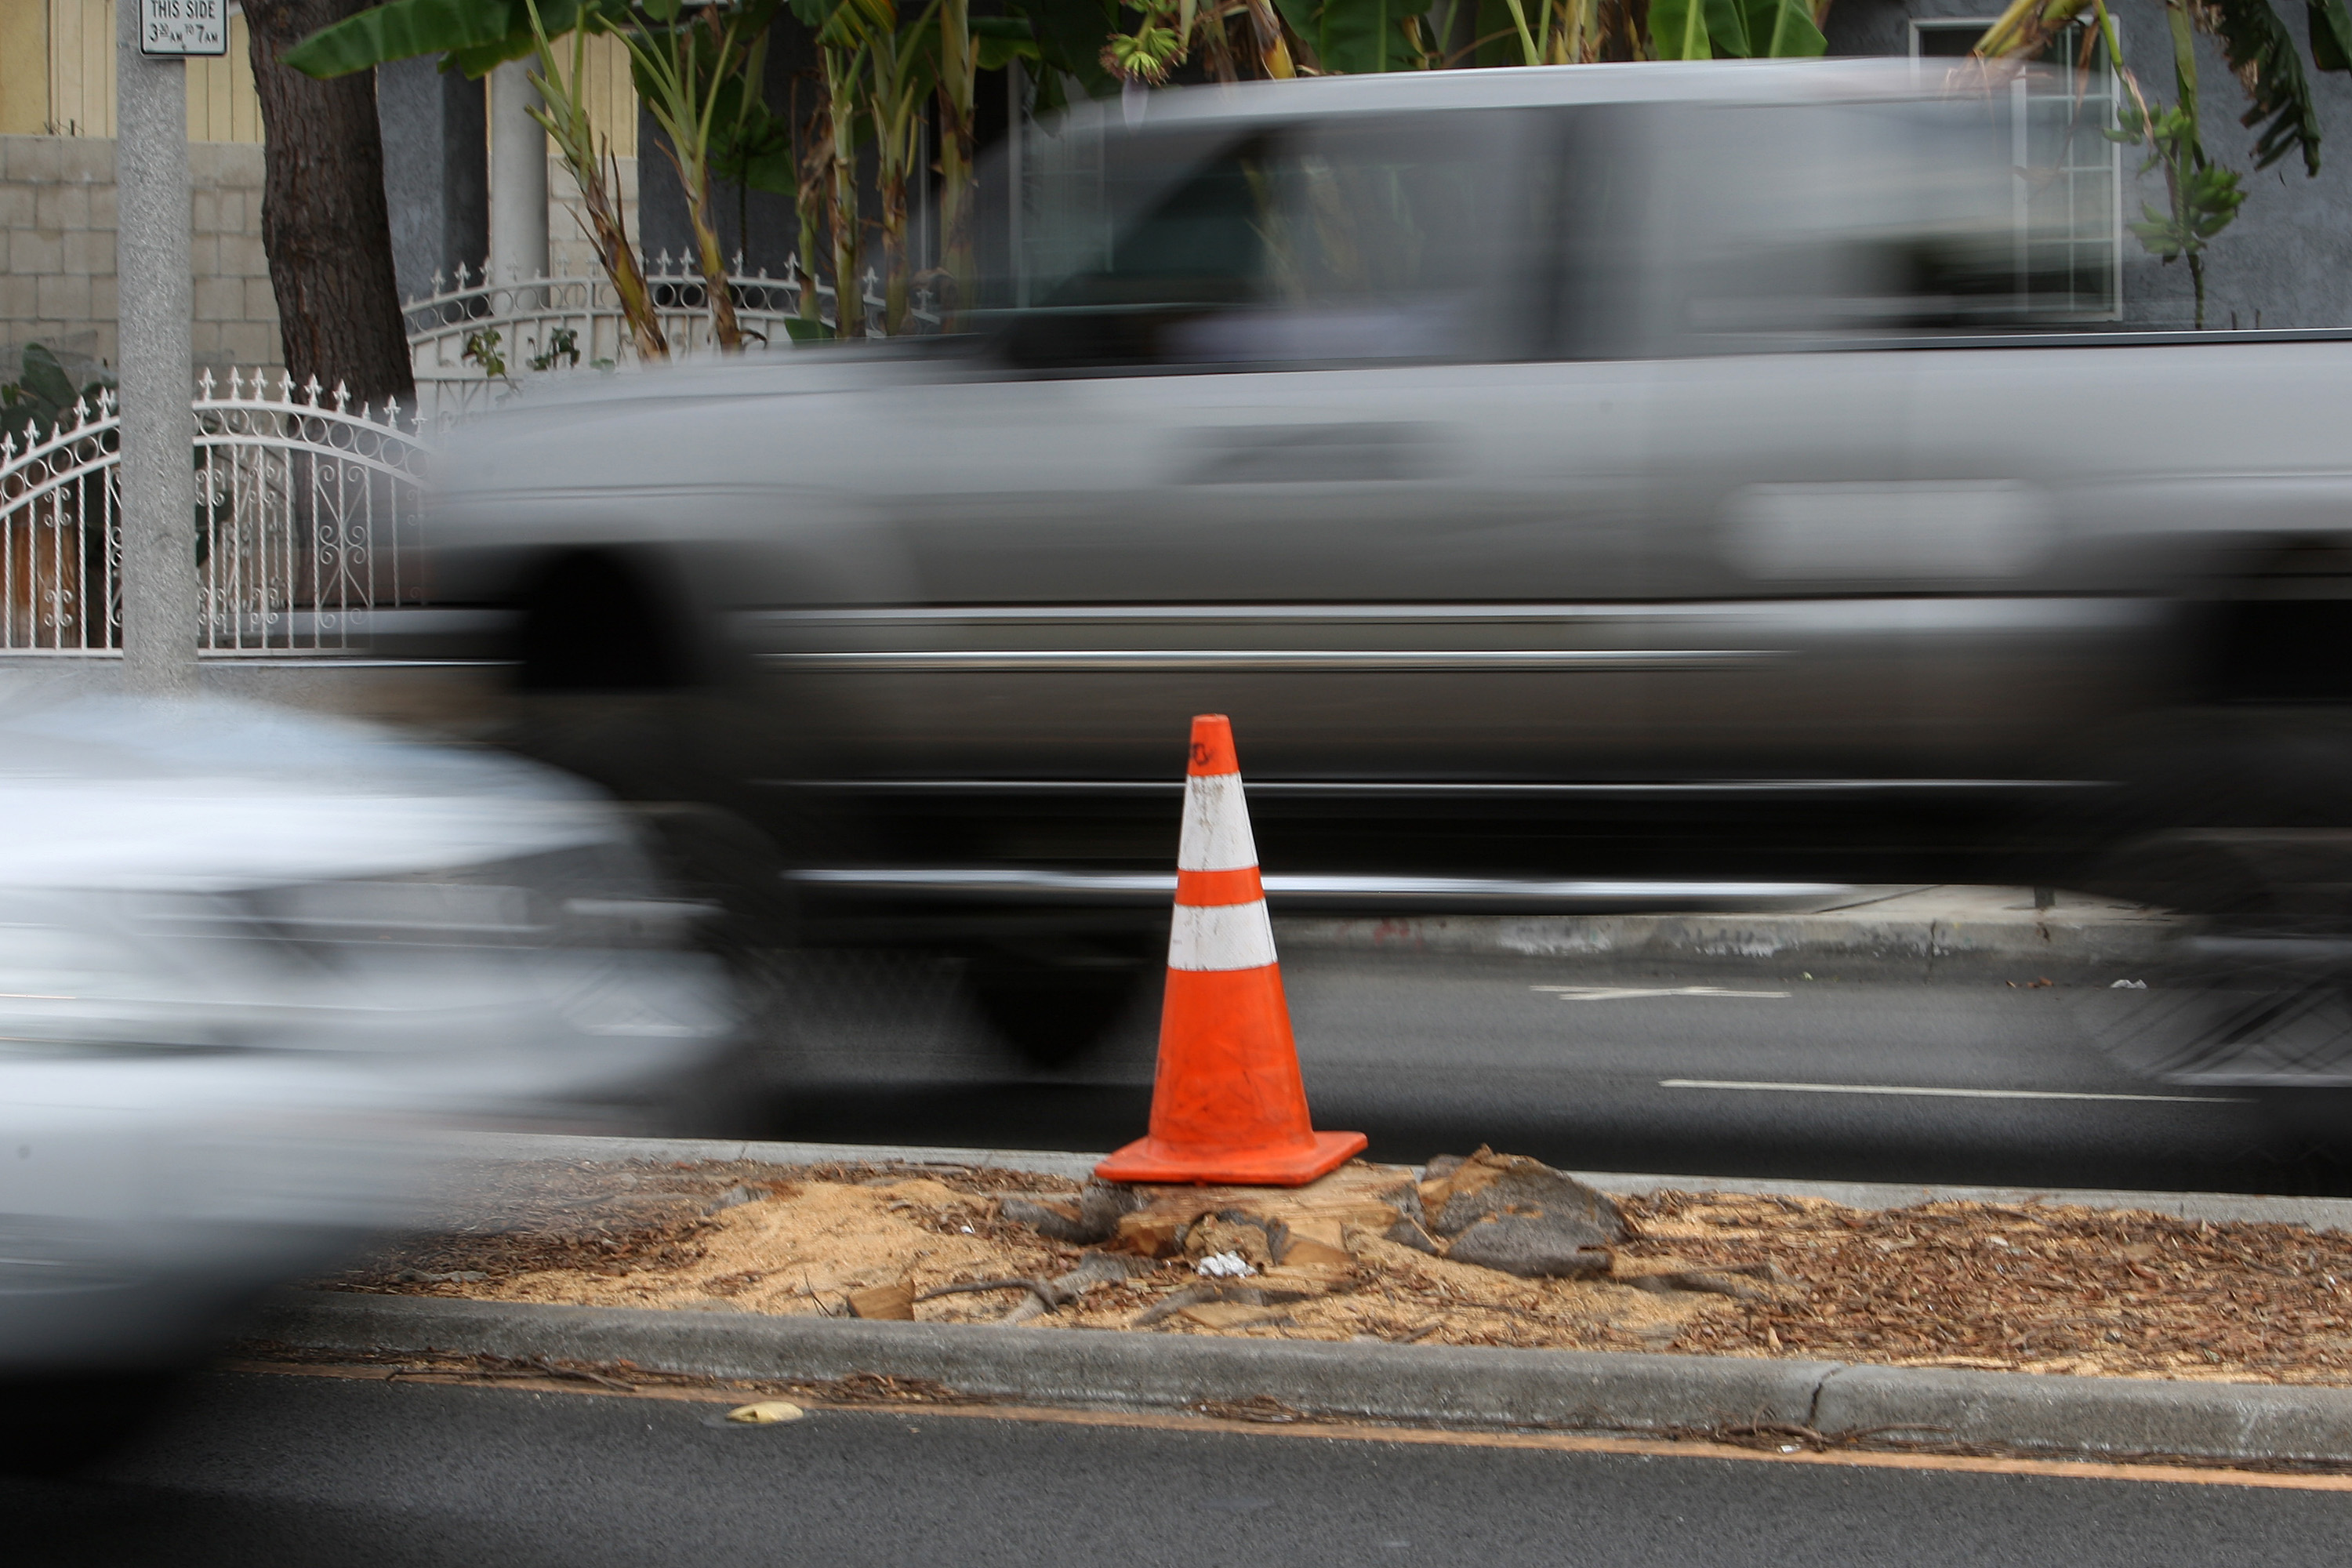 Cars pass along Manchester Boulevard on Sept. 5, 2012 in the Los Angeles-area community of Inglewood, California.